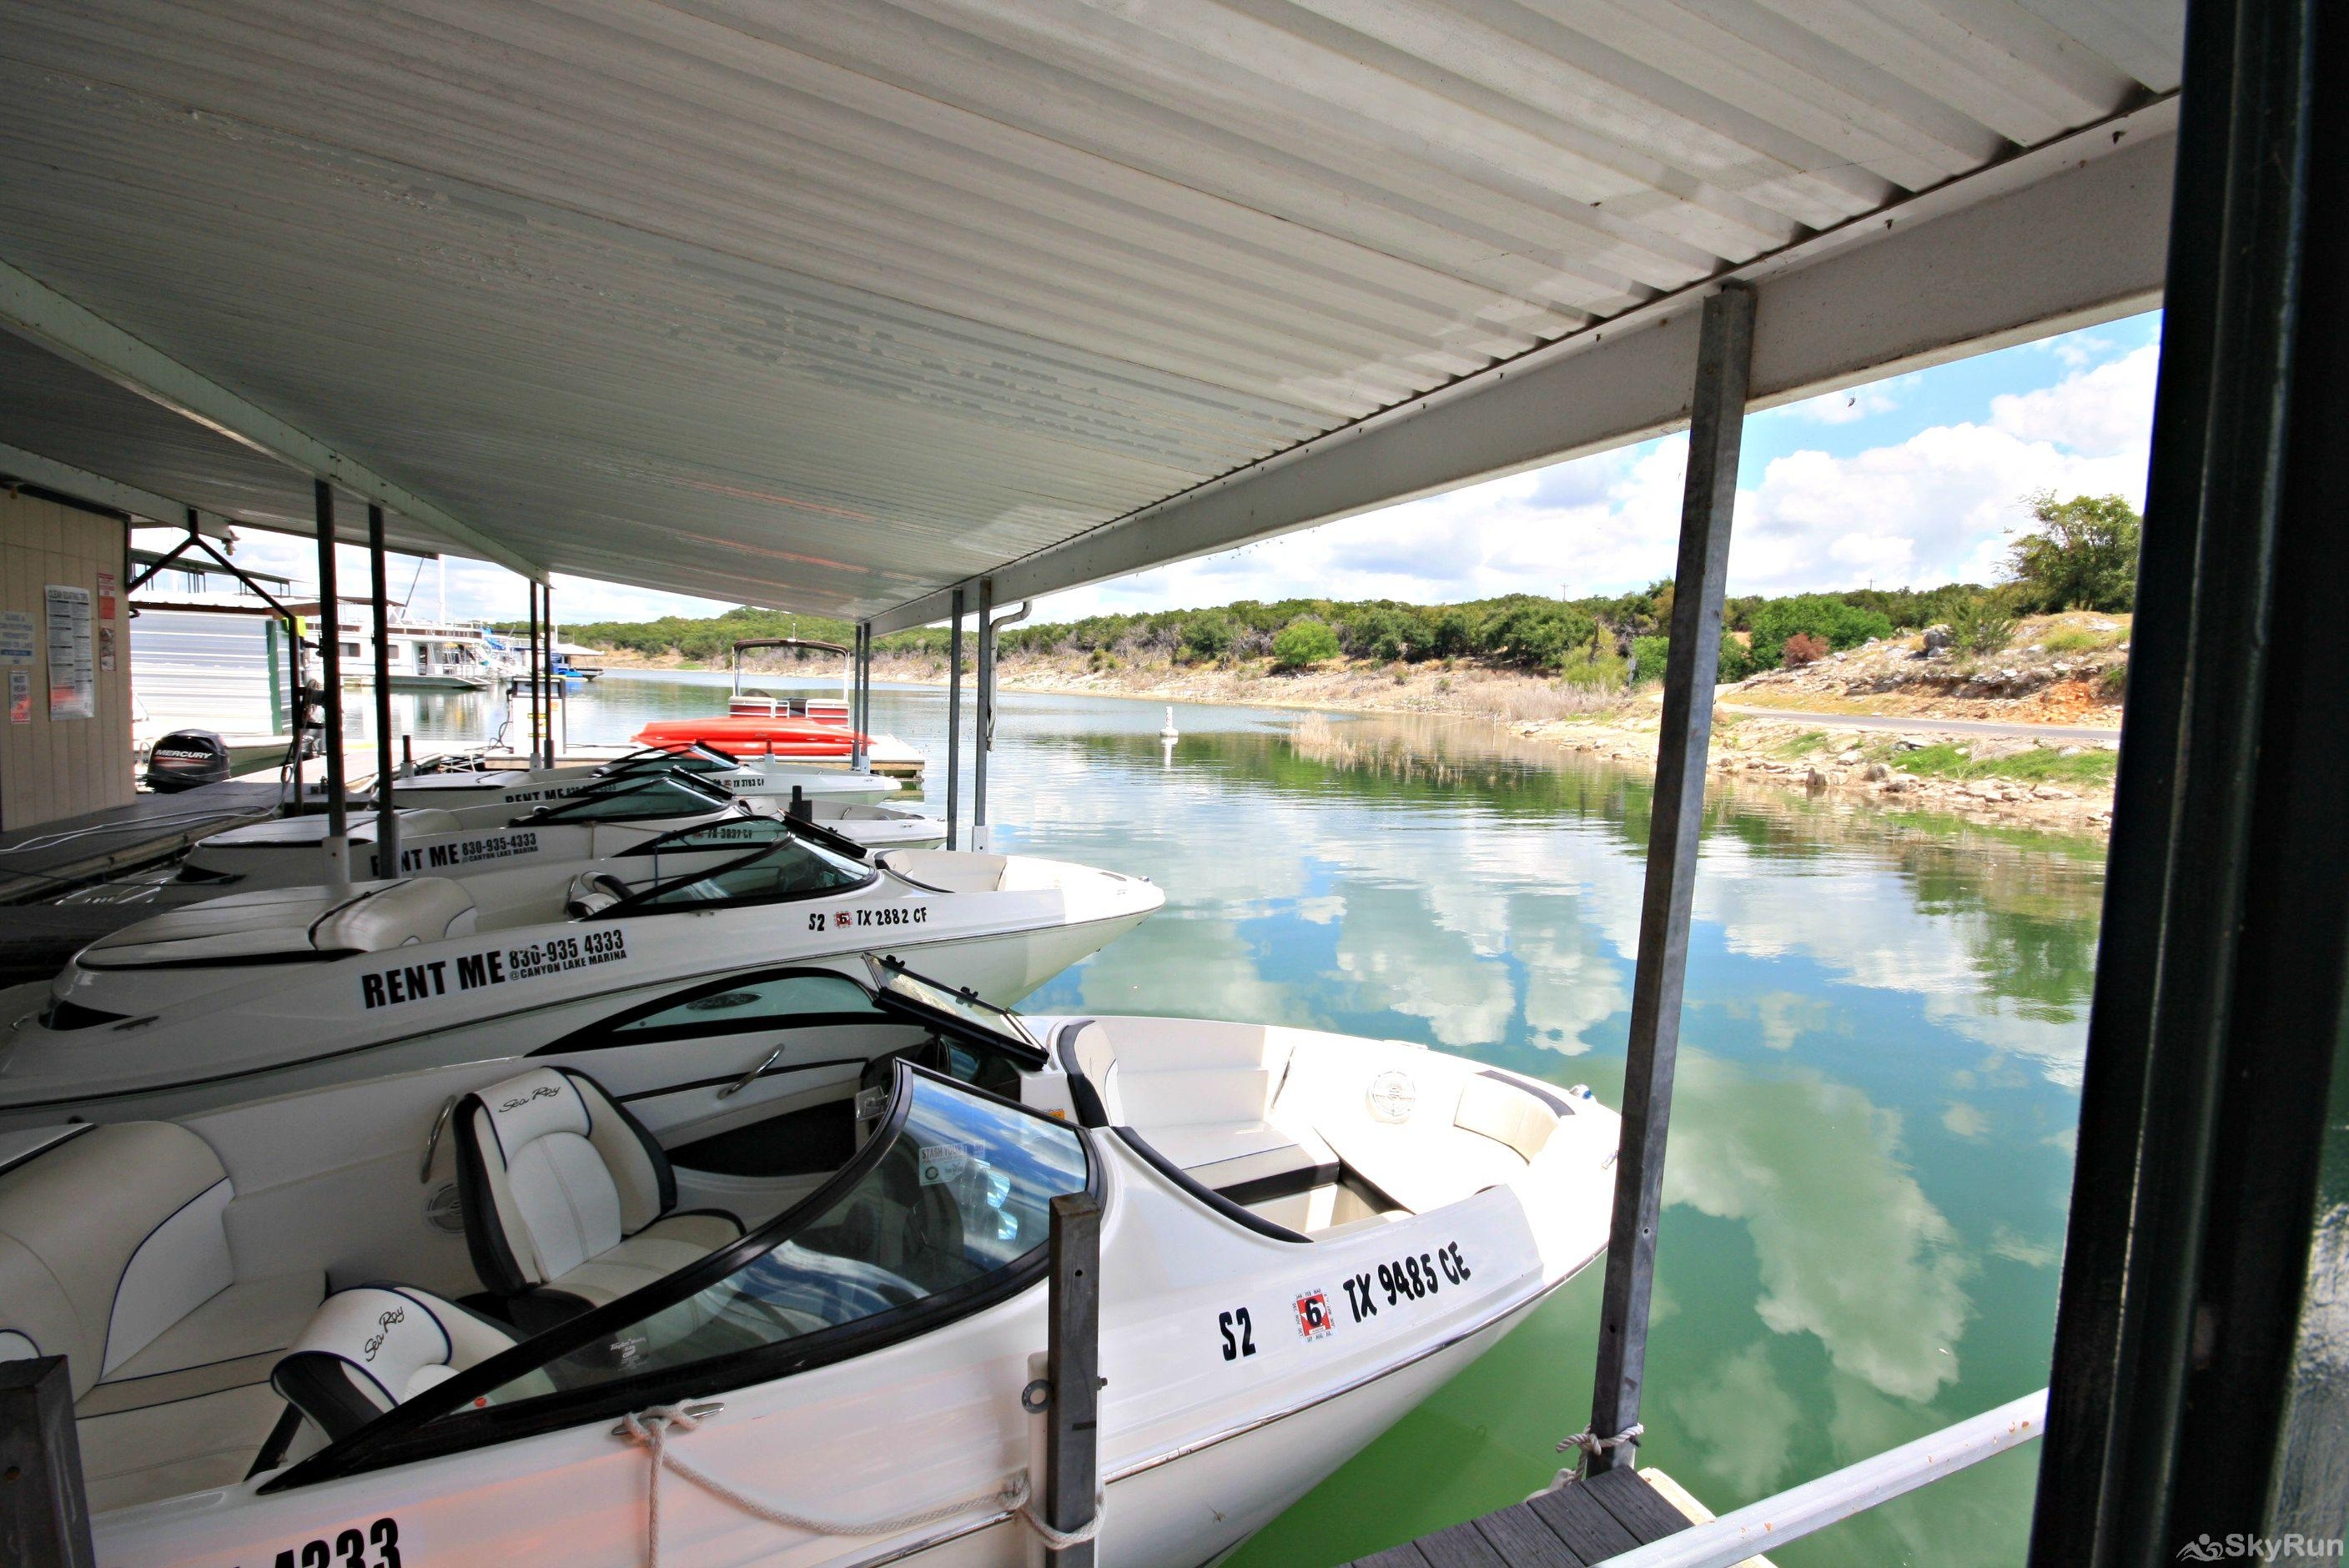 WATER'S EDGE RETREAT Rent a boat from the nearby marina